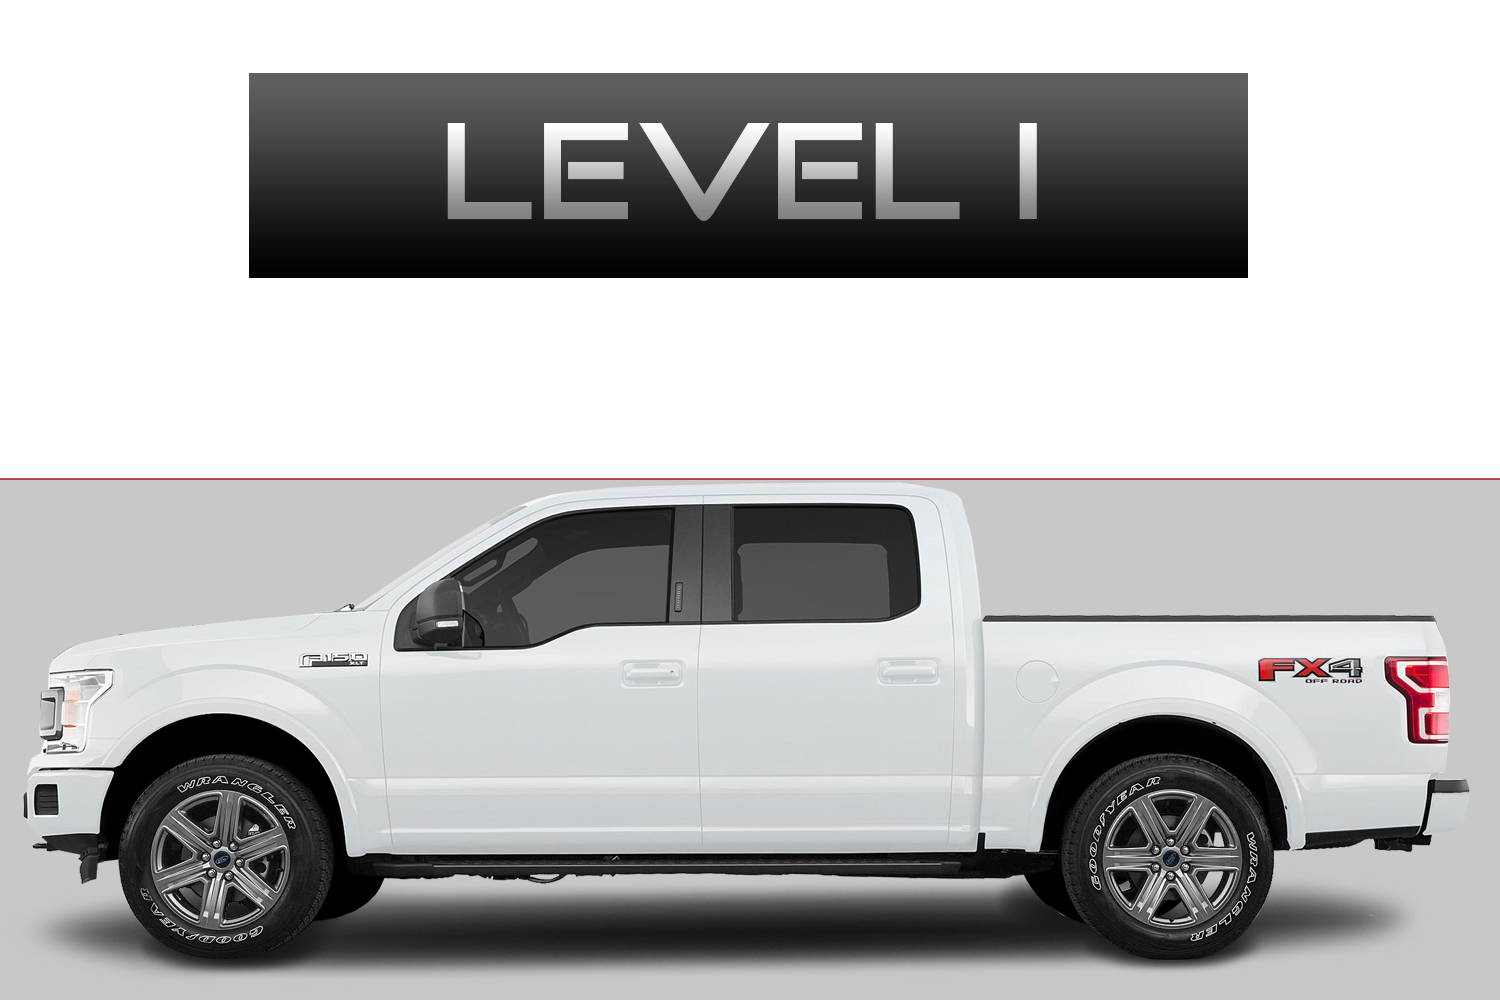 Ford F150 Off-Road Customizing Package Level 1 by 3C Trucks